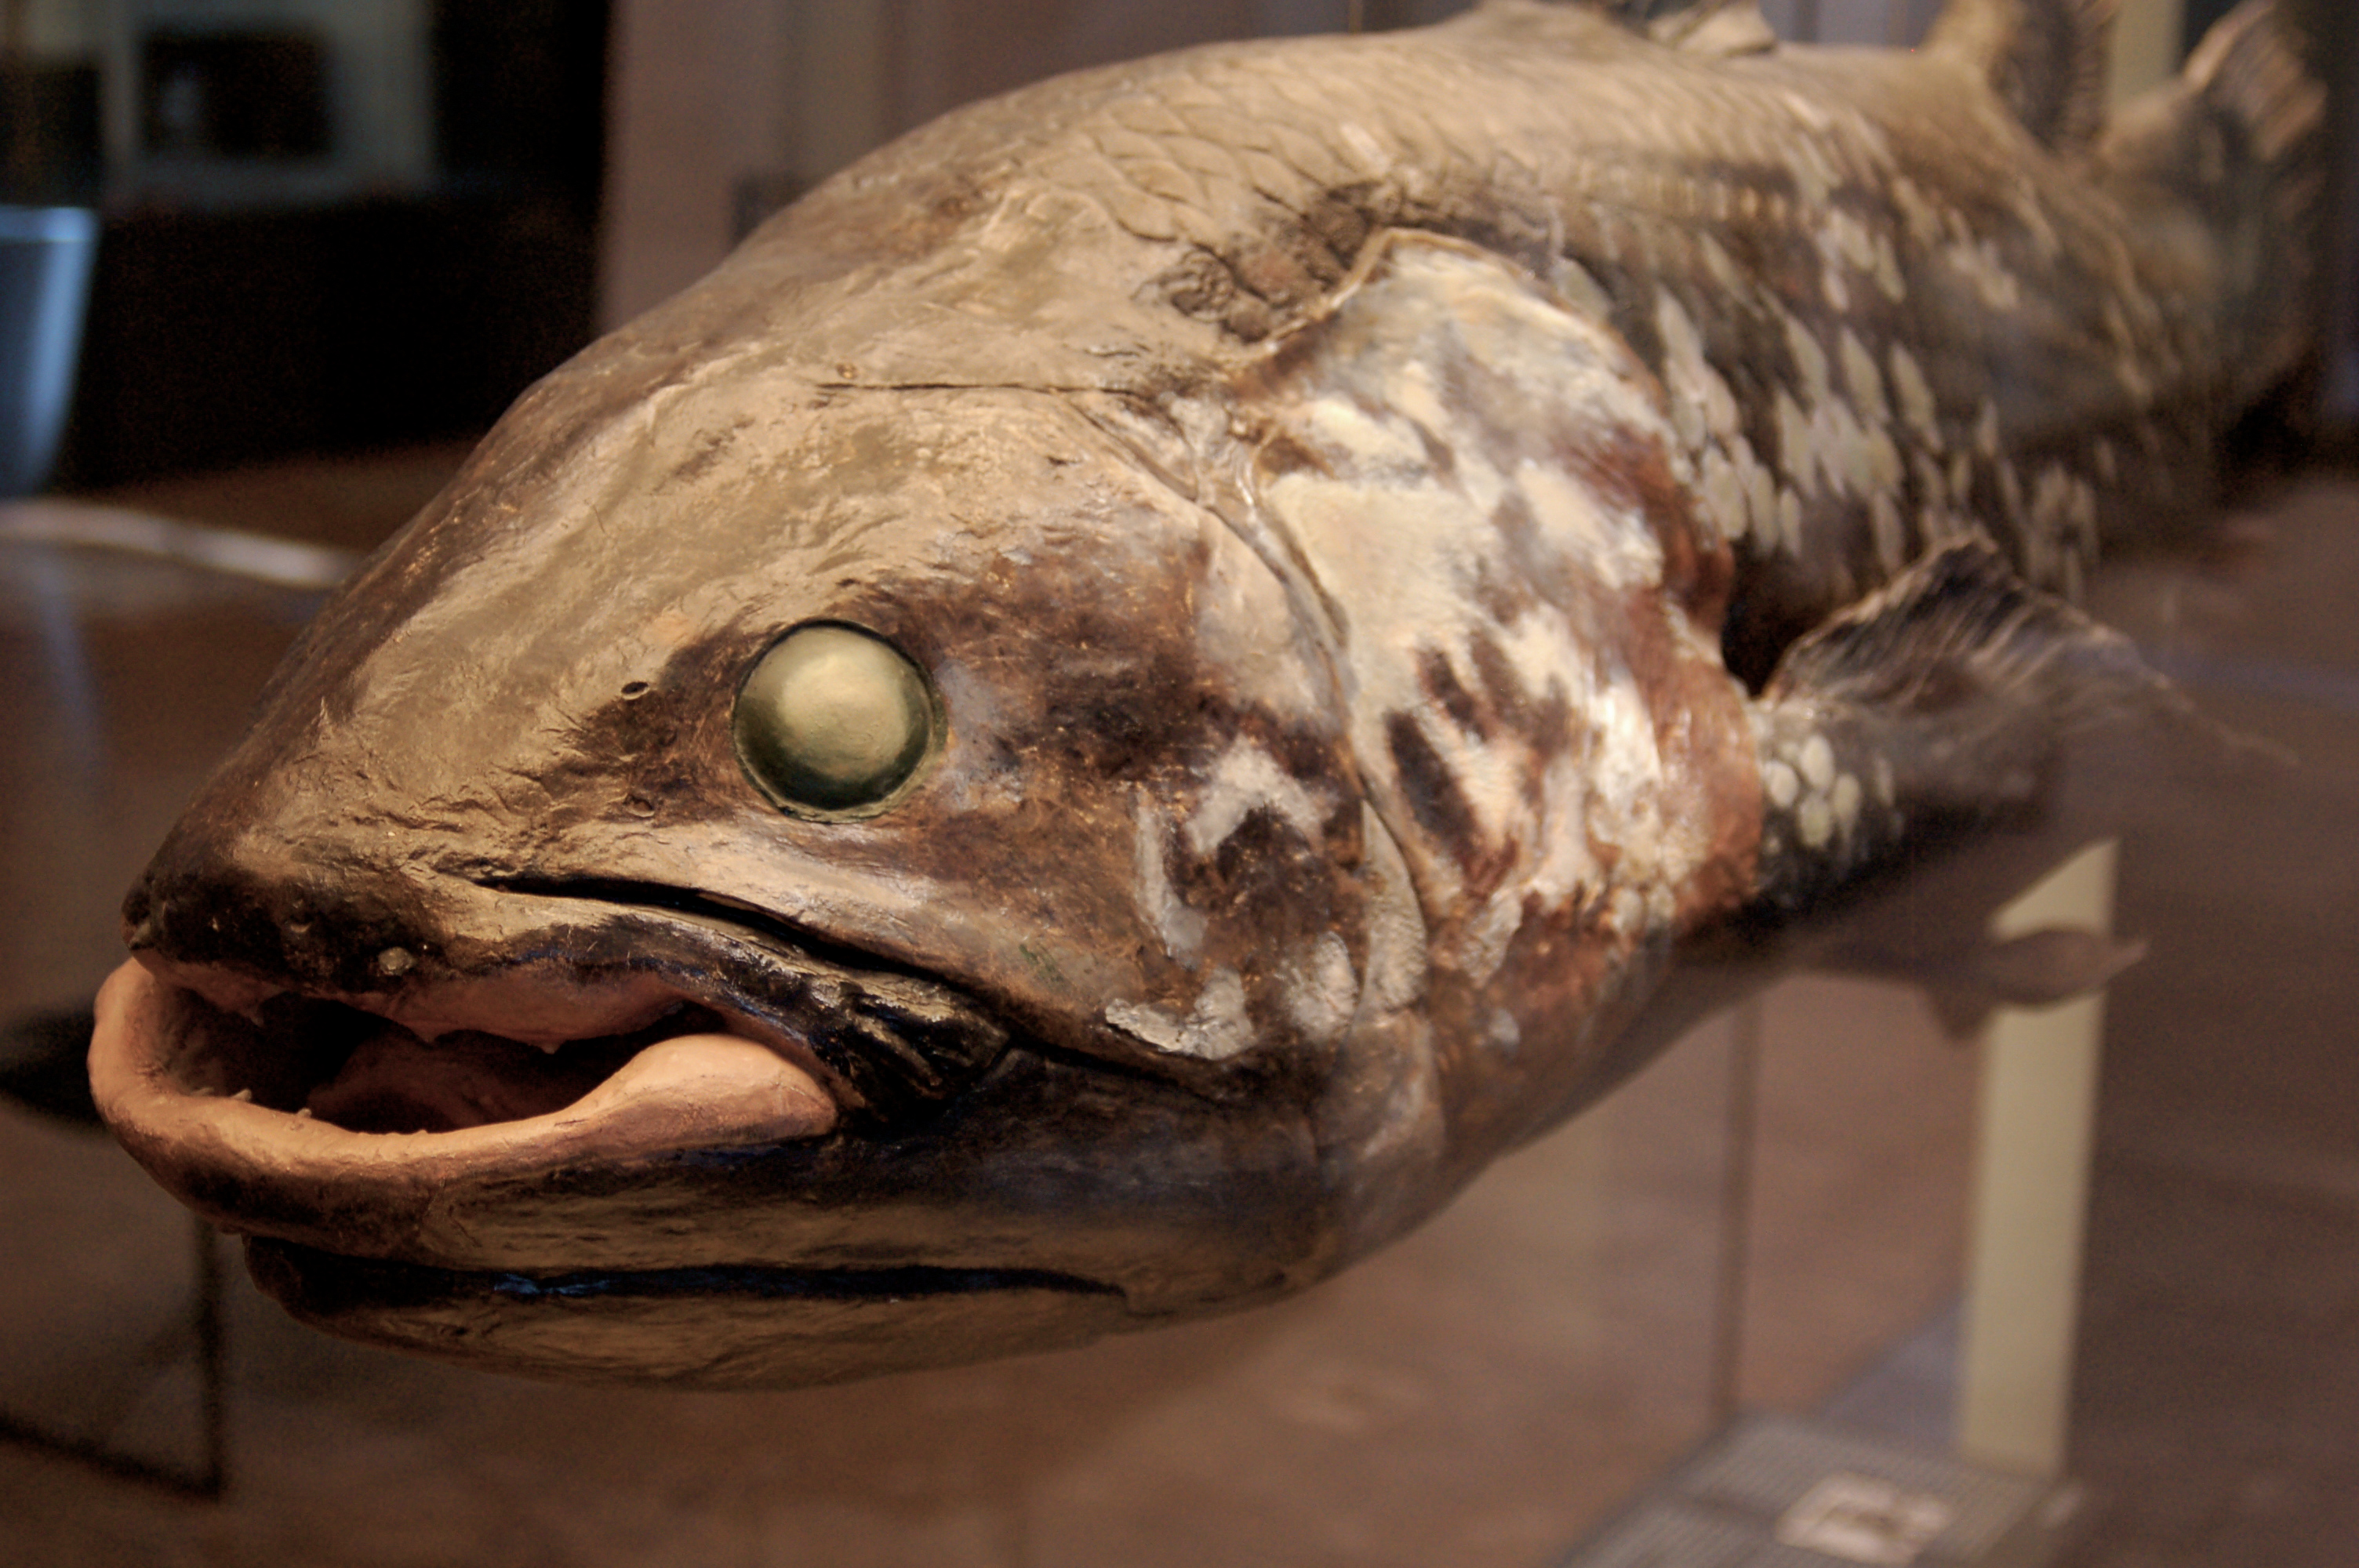 Coelacanth Wiki Commons HeritageDaily Heritage Archaeology News - Wikicommons